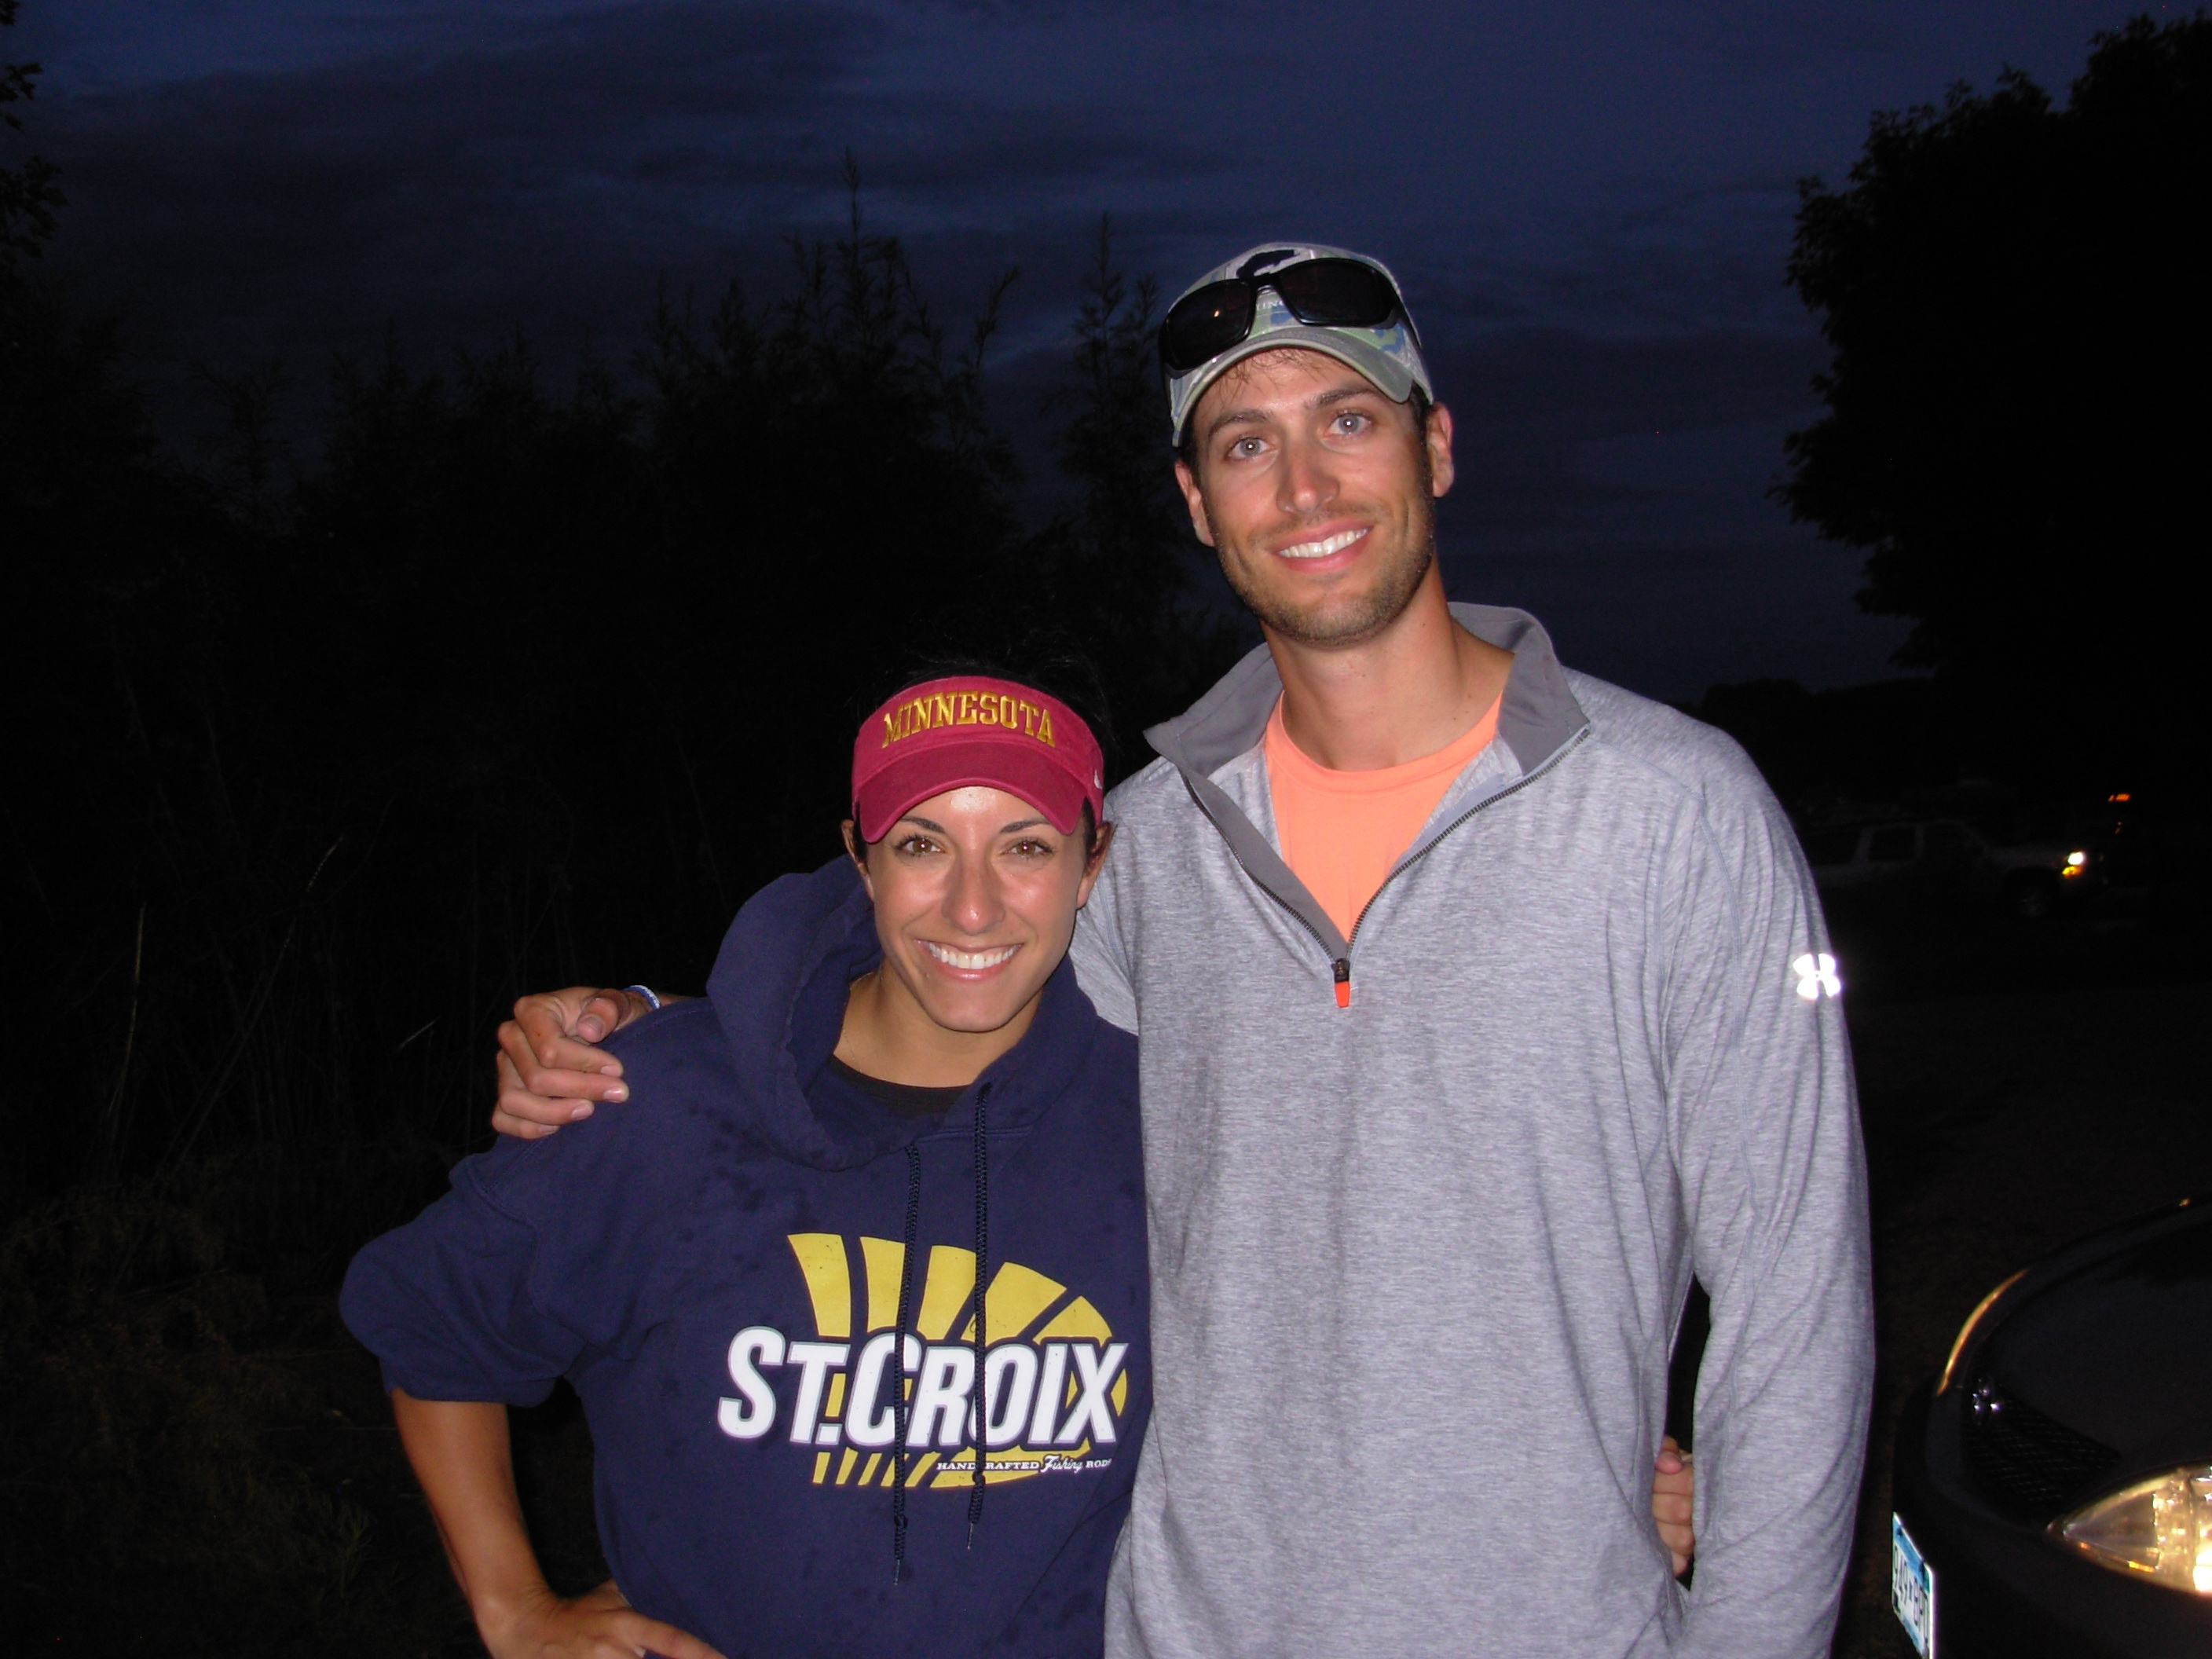 8-26-2014 Tuesday Night Bassin Minnetonka 2nd place winners Nicole Jacobs & Colby Bolin